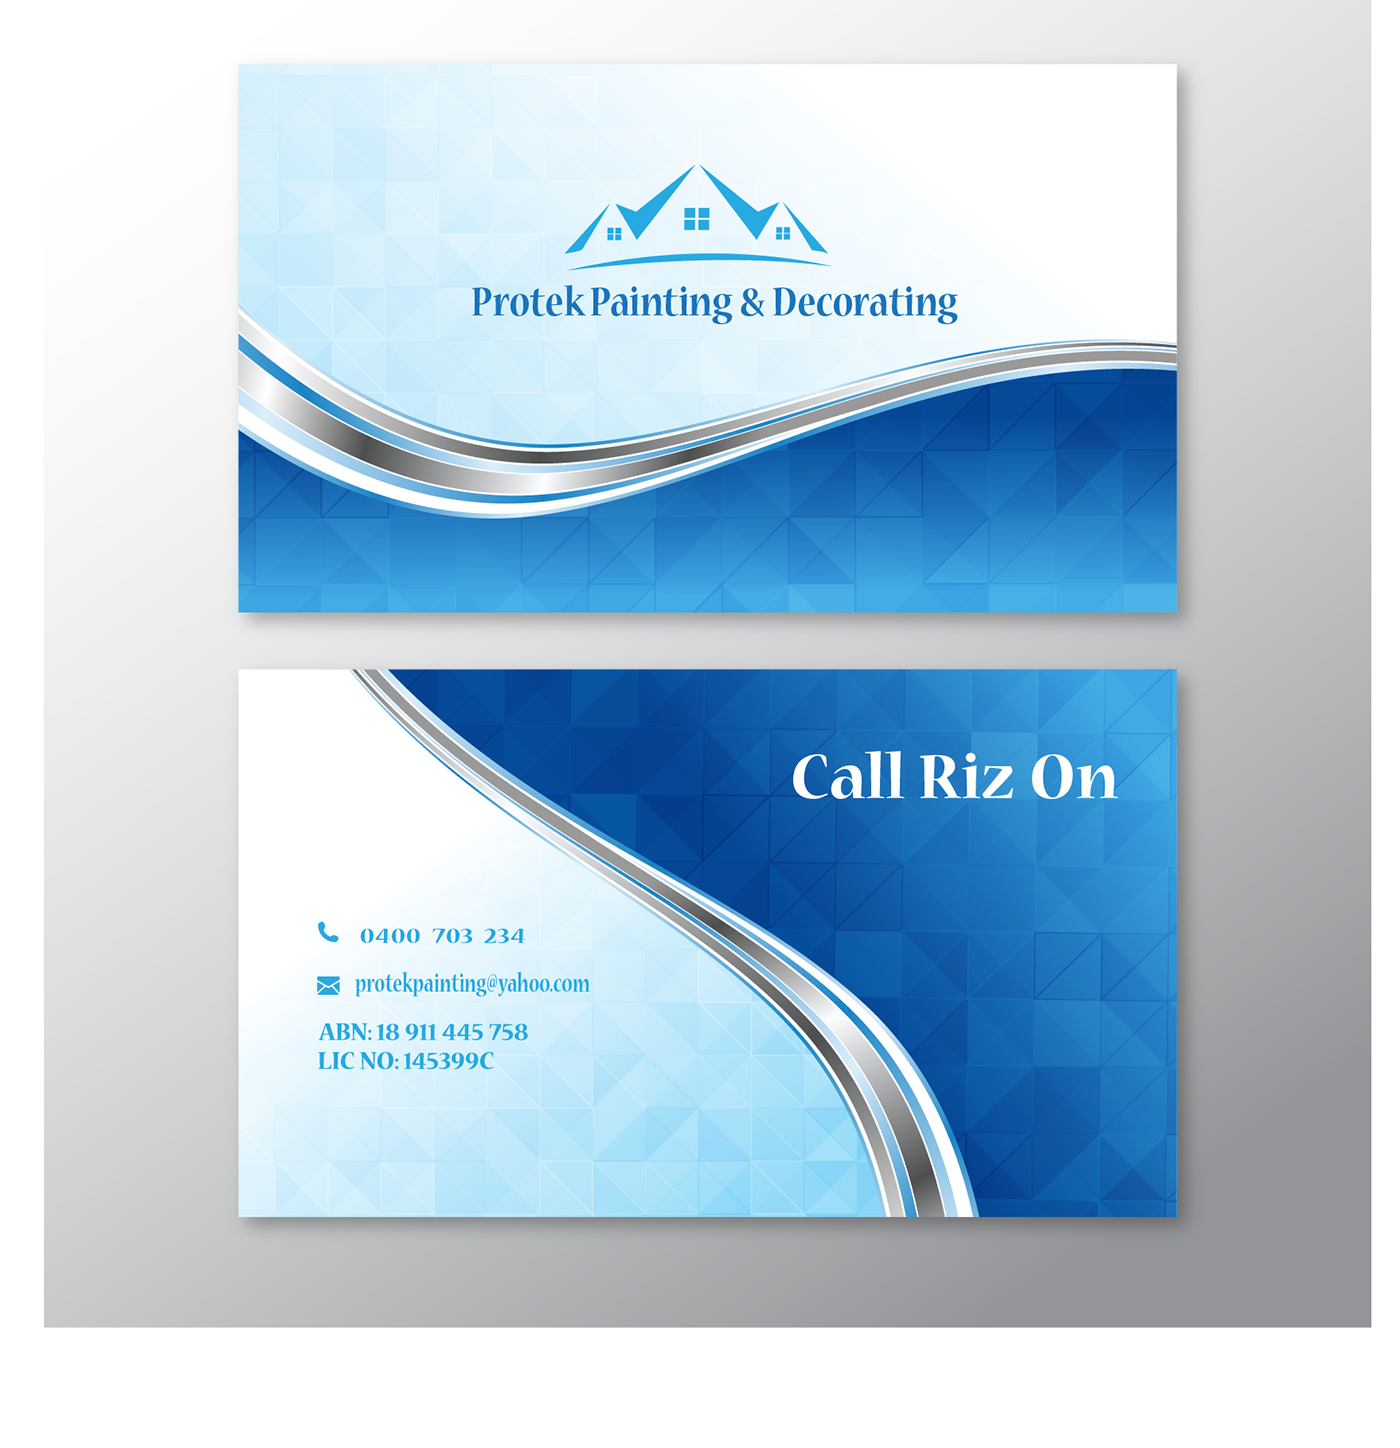 Check Out My Behance Project Visiting Card Design Https Www Behance Net Gallery 62134793 Visiting Card De Visiting Card Design Visiting Cards Card Design